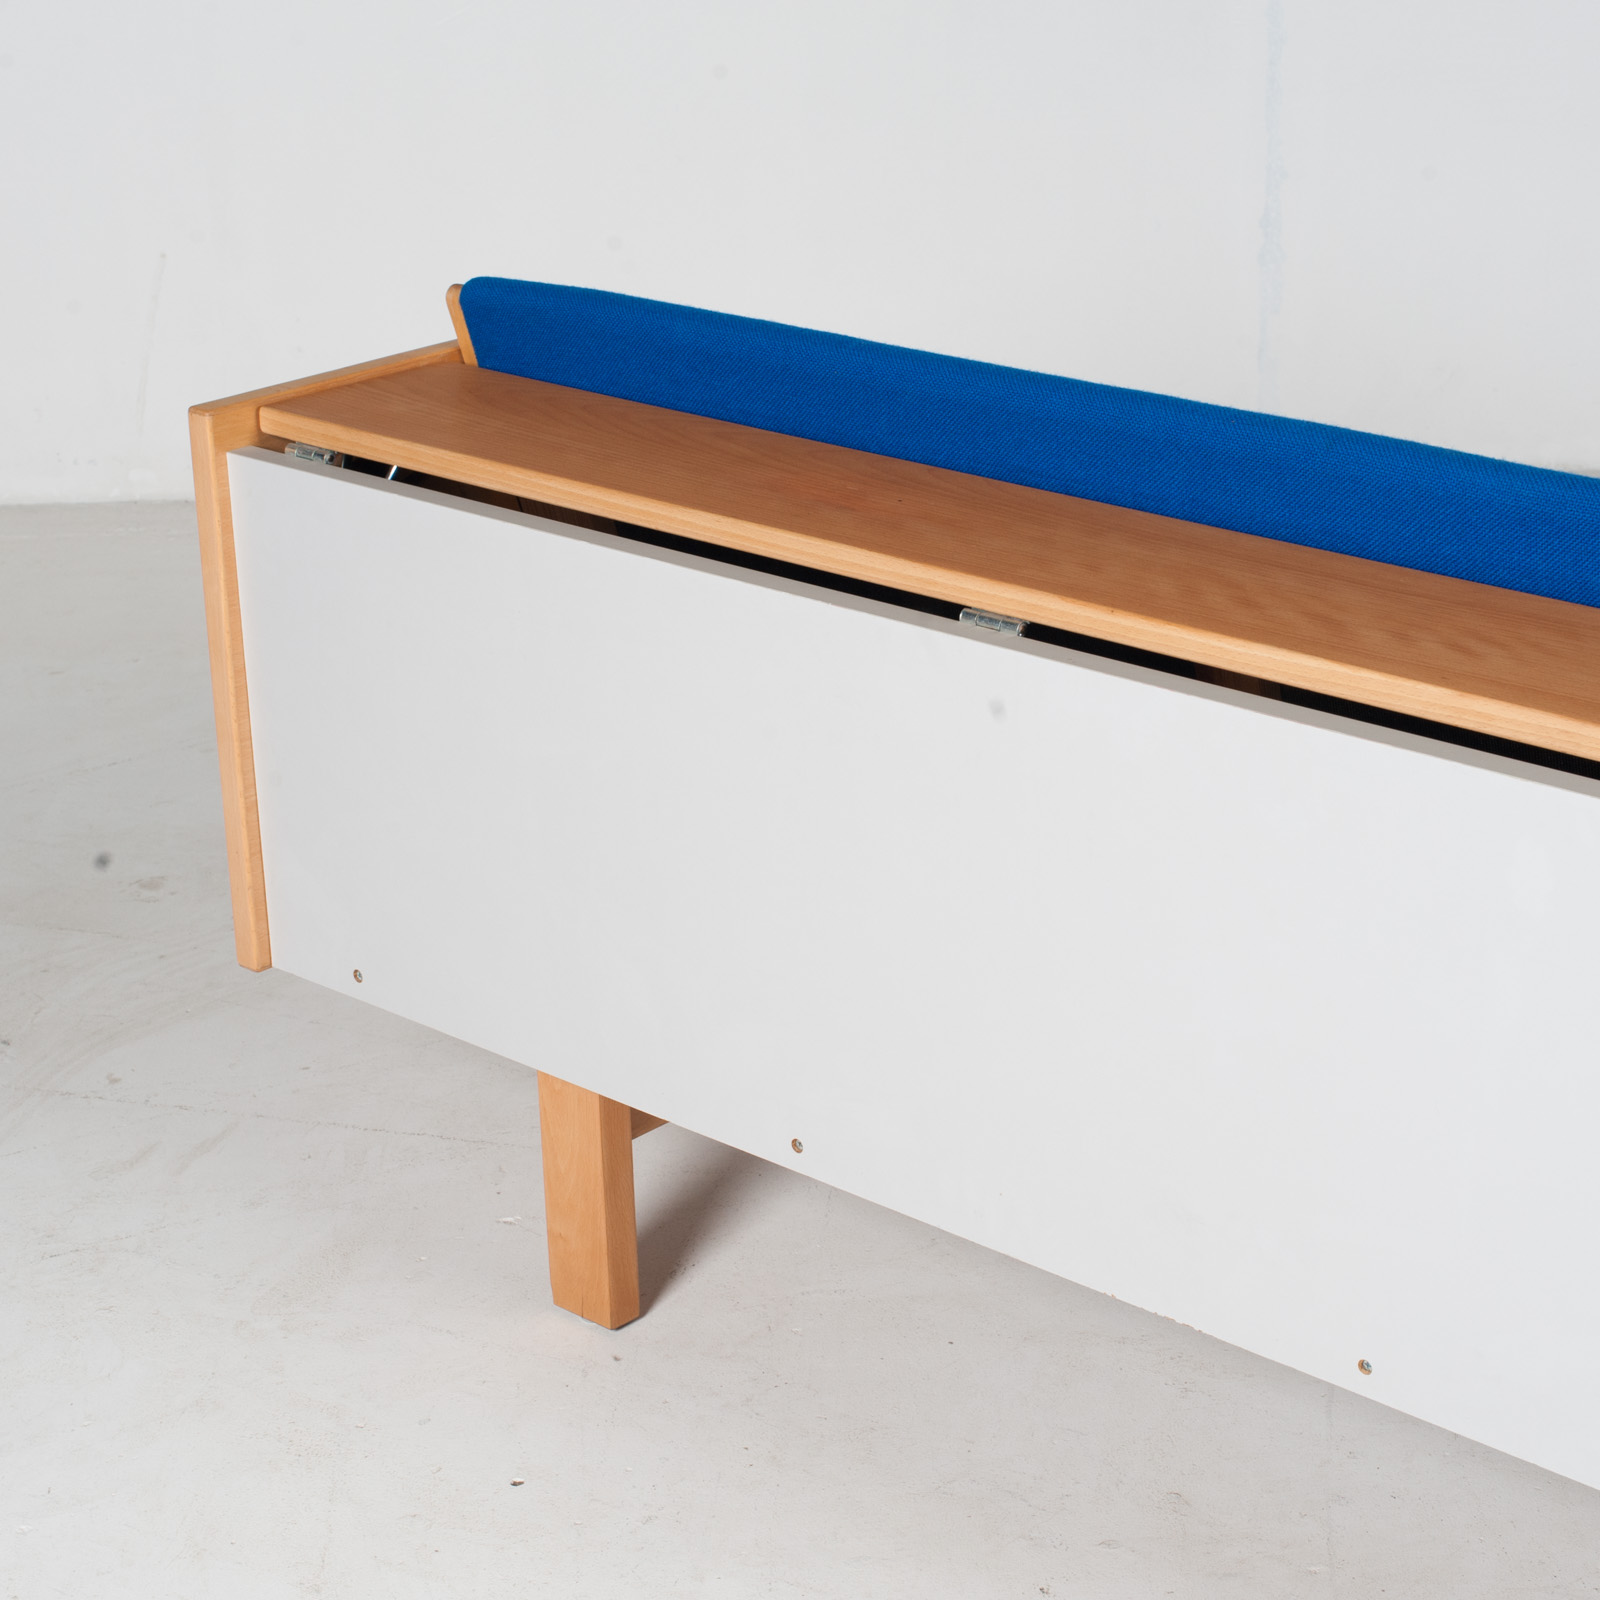 Ge 258 Daybed By Hans J. Wegner In Beech With Original Blue Upholstery For Getama, 1960s, Denmark13